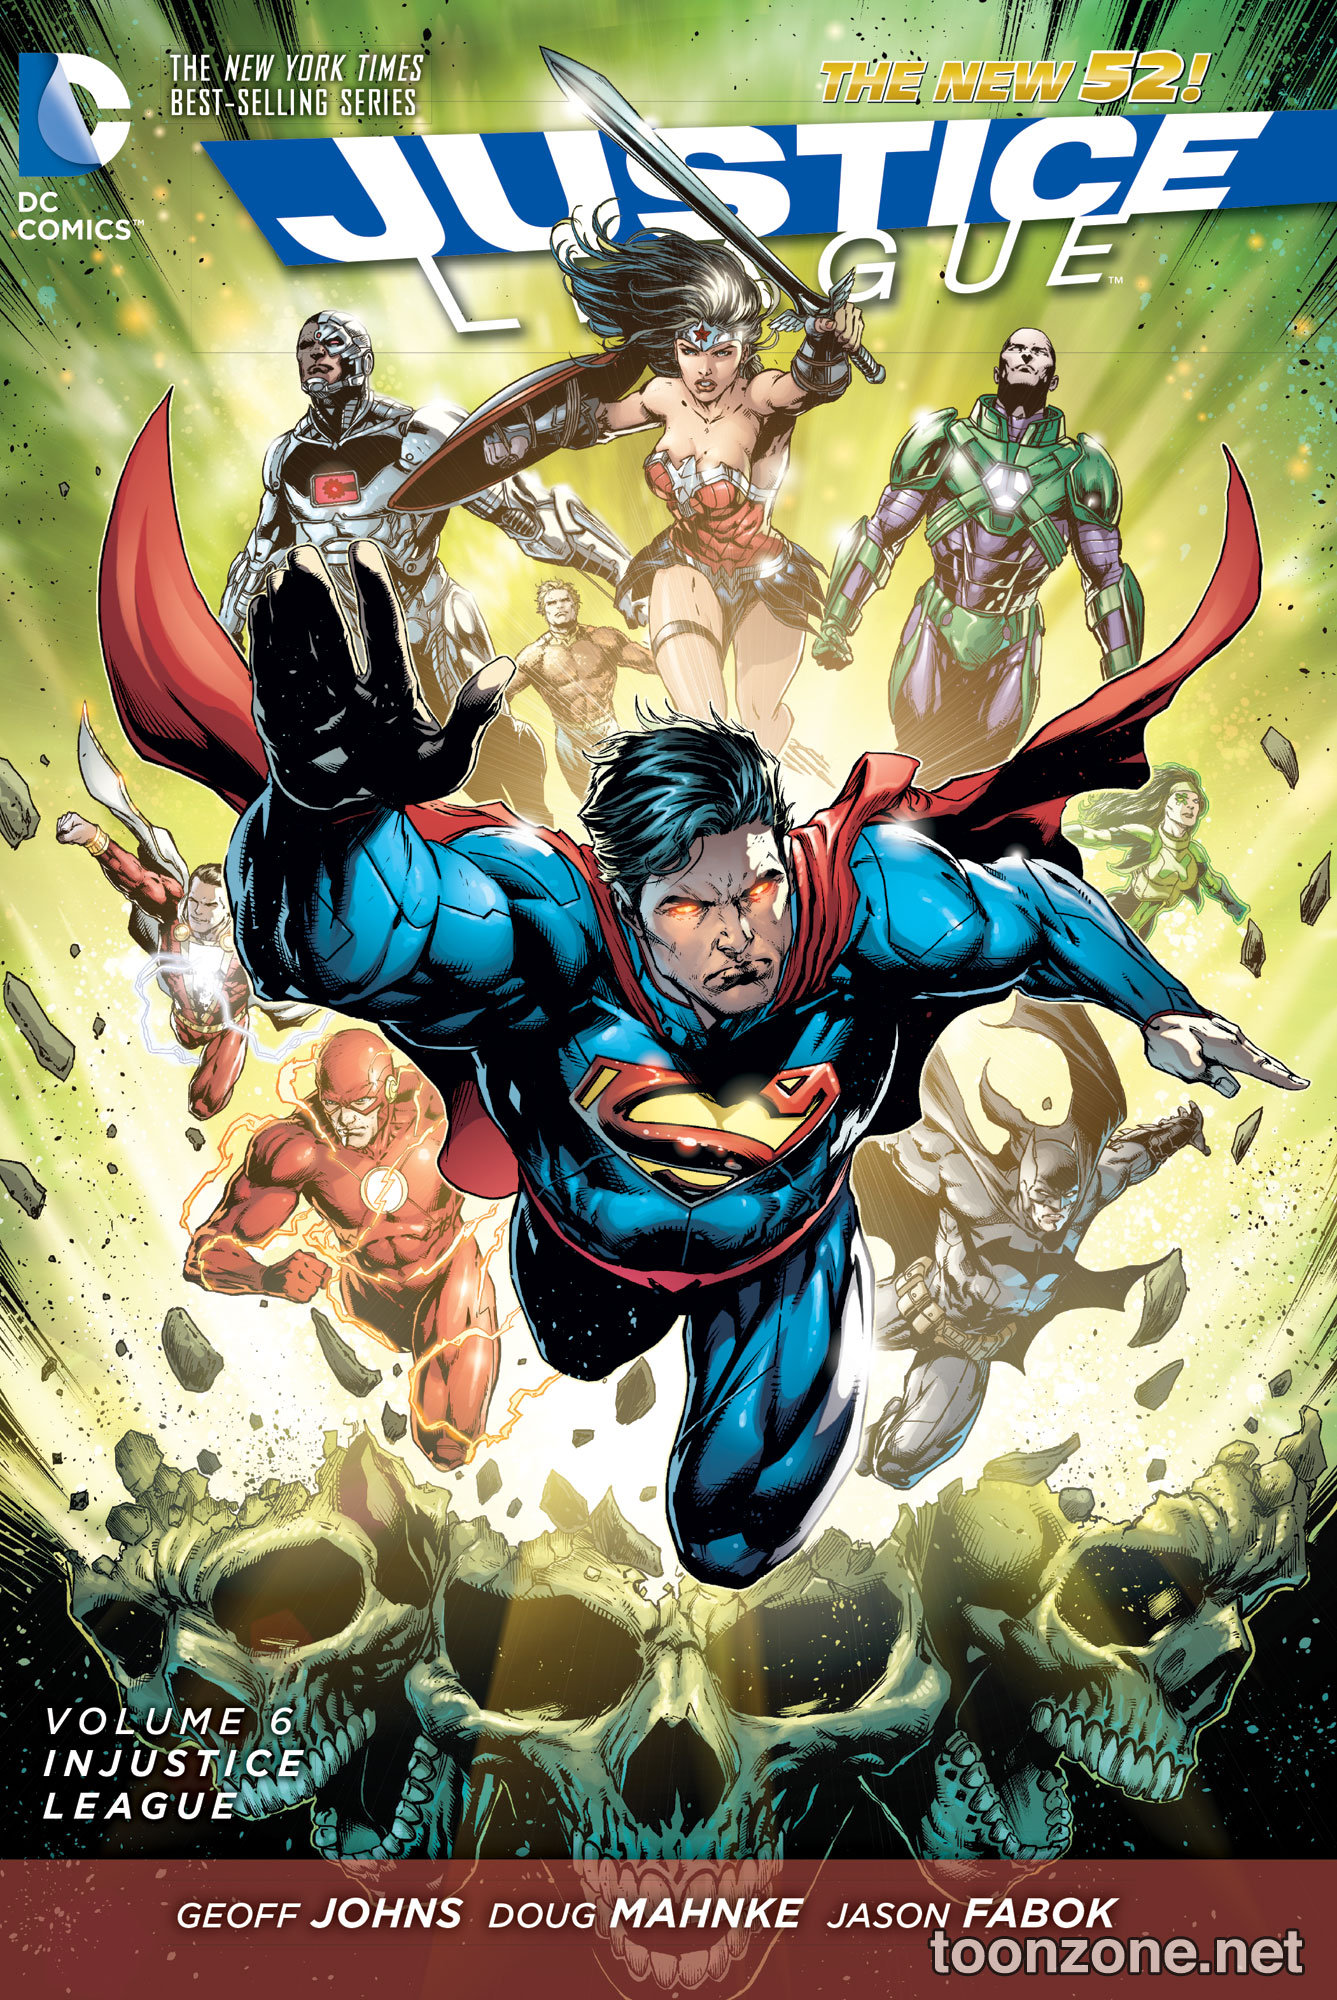 JUSTICE LEAGUE VOL. 6: INJUSTICE LEAGUE TP